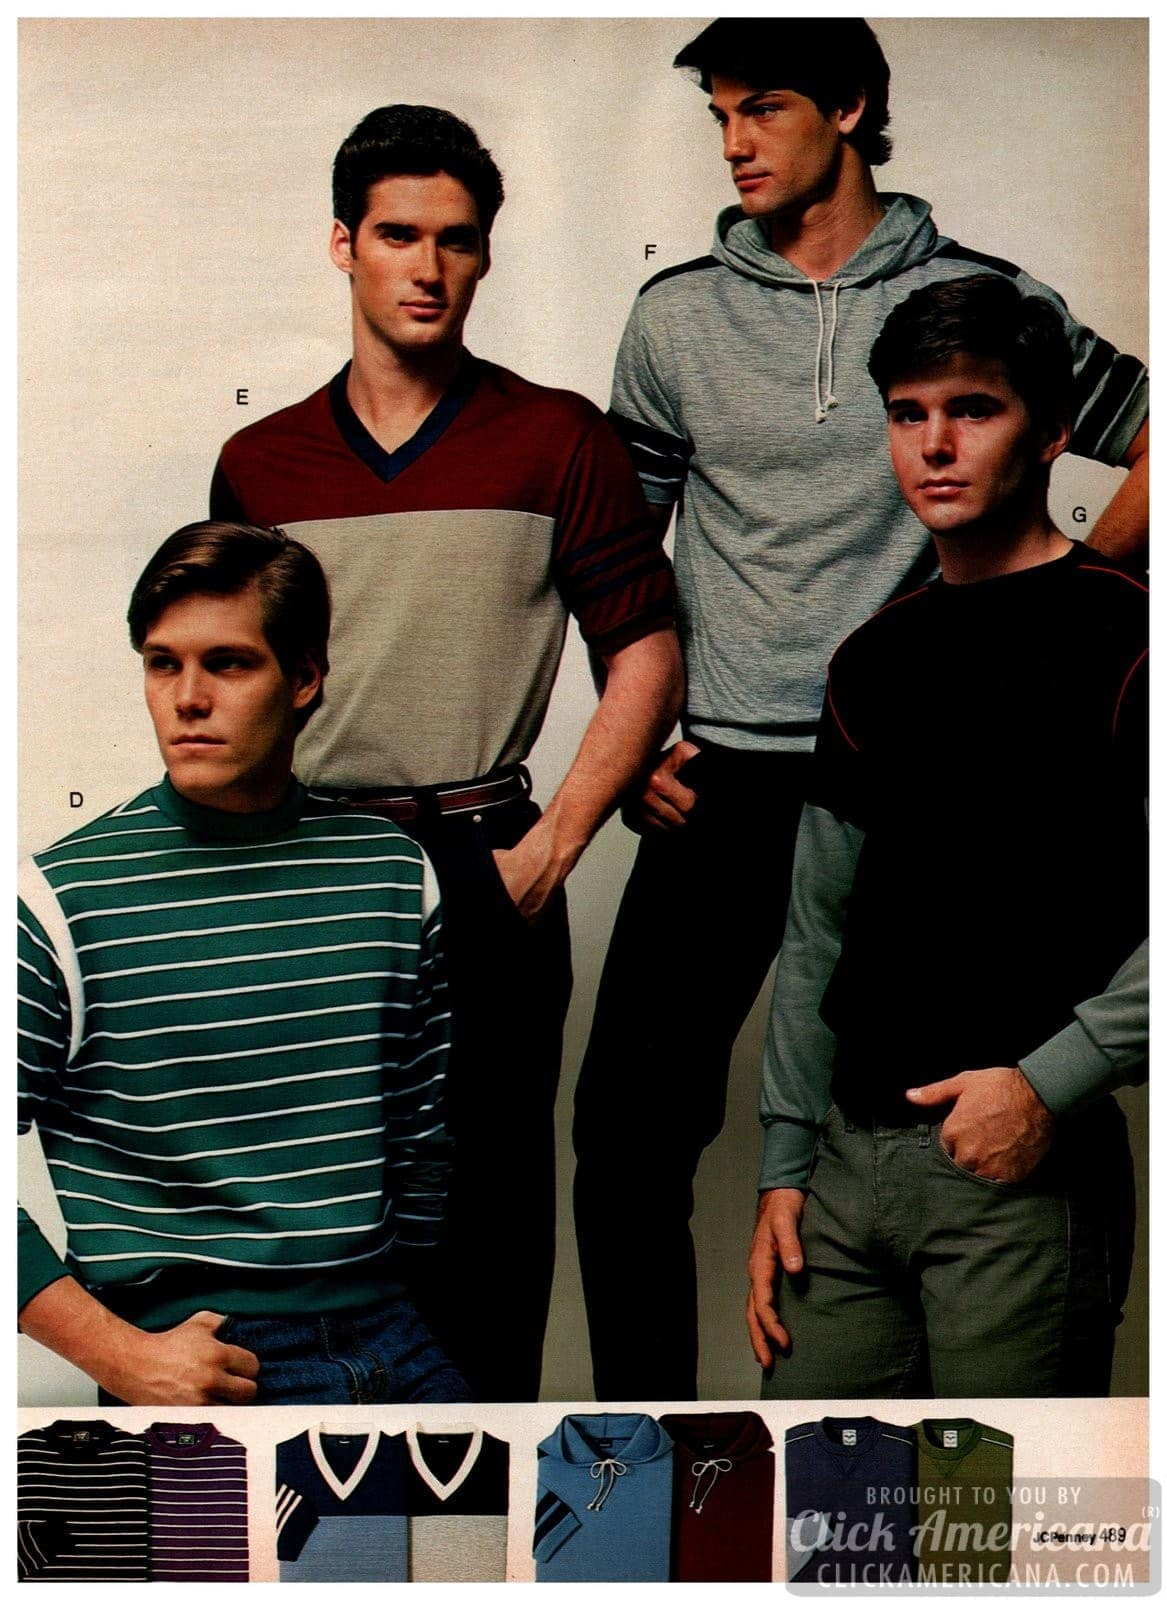 '80s pullovers, shirts with hoods, striped shirts and casual sportswear for men